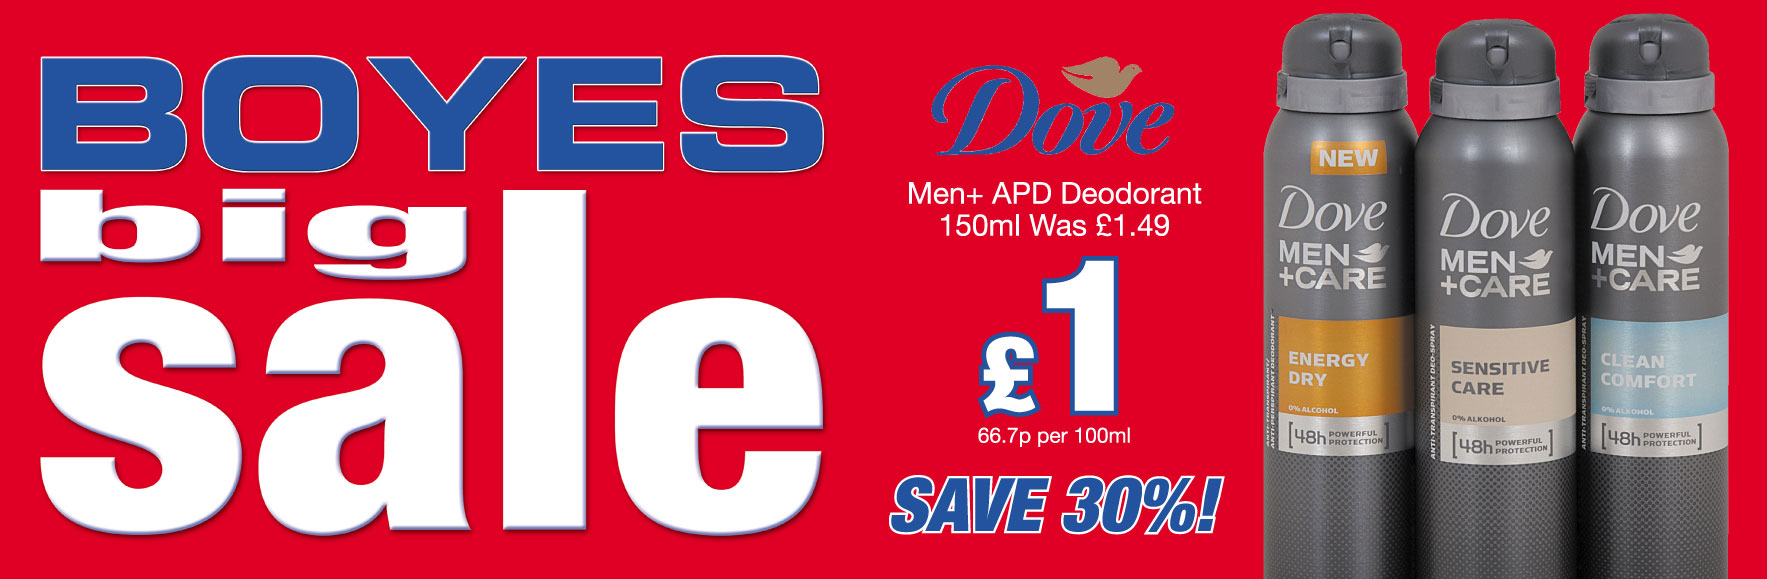 Dave Men+ APD Deodorant was £1.49 NOW £1